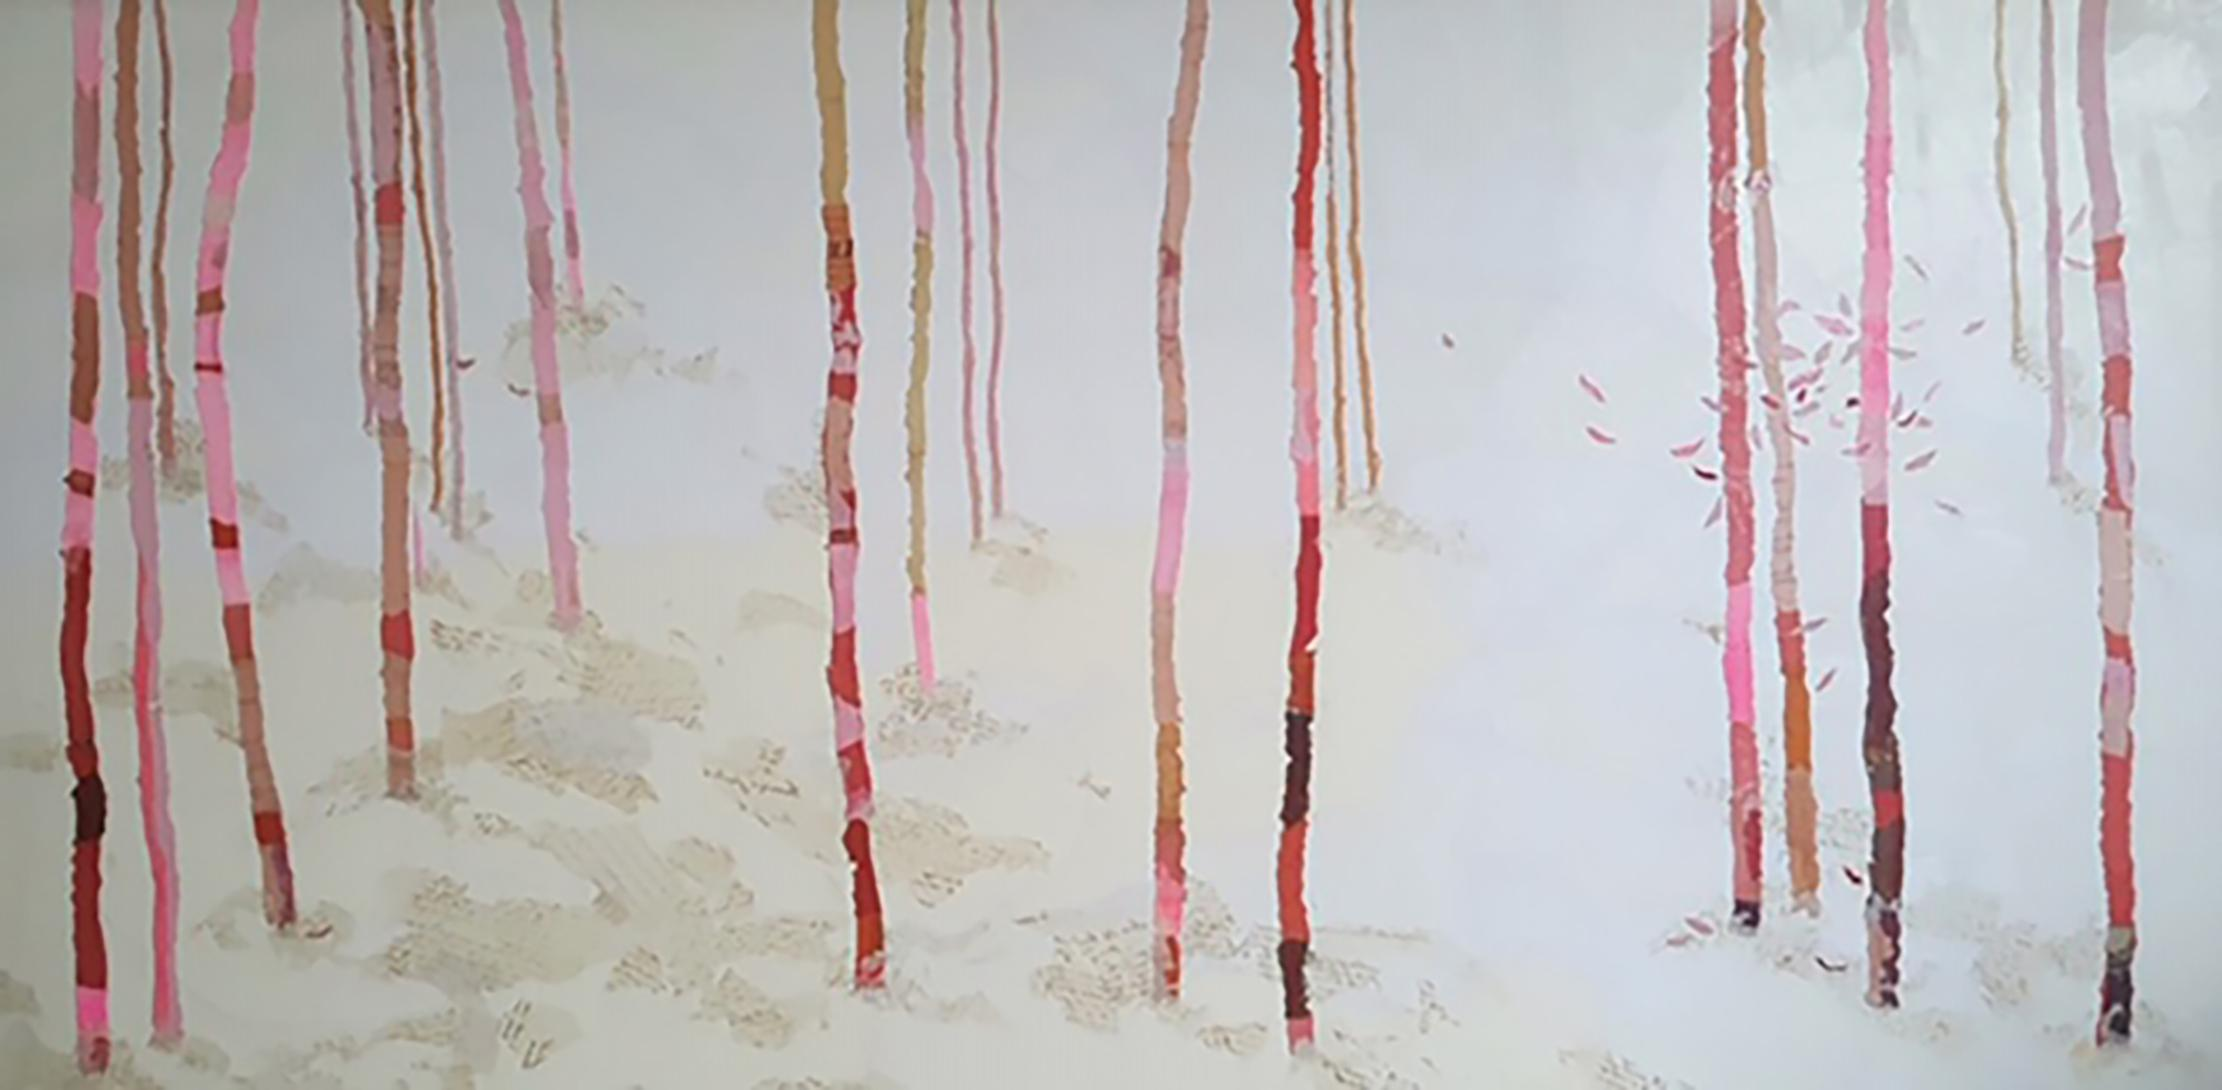 Ephemeral - 21st Century, Contemporary, Old Paper, Medieval Ink, Collage, Forest